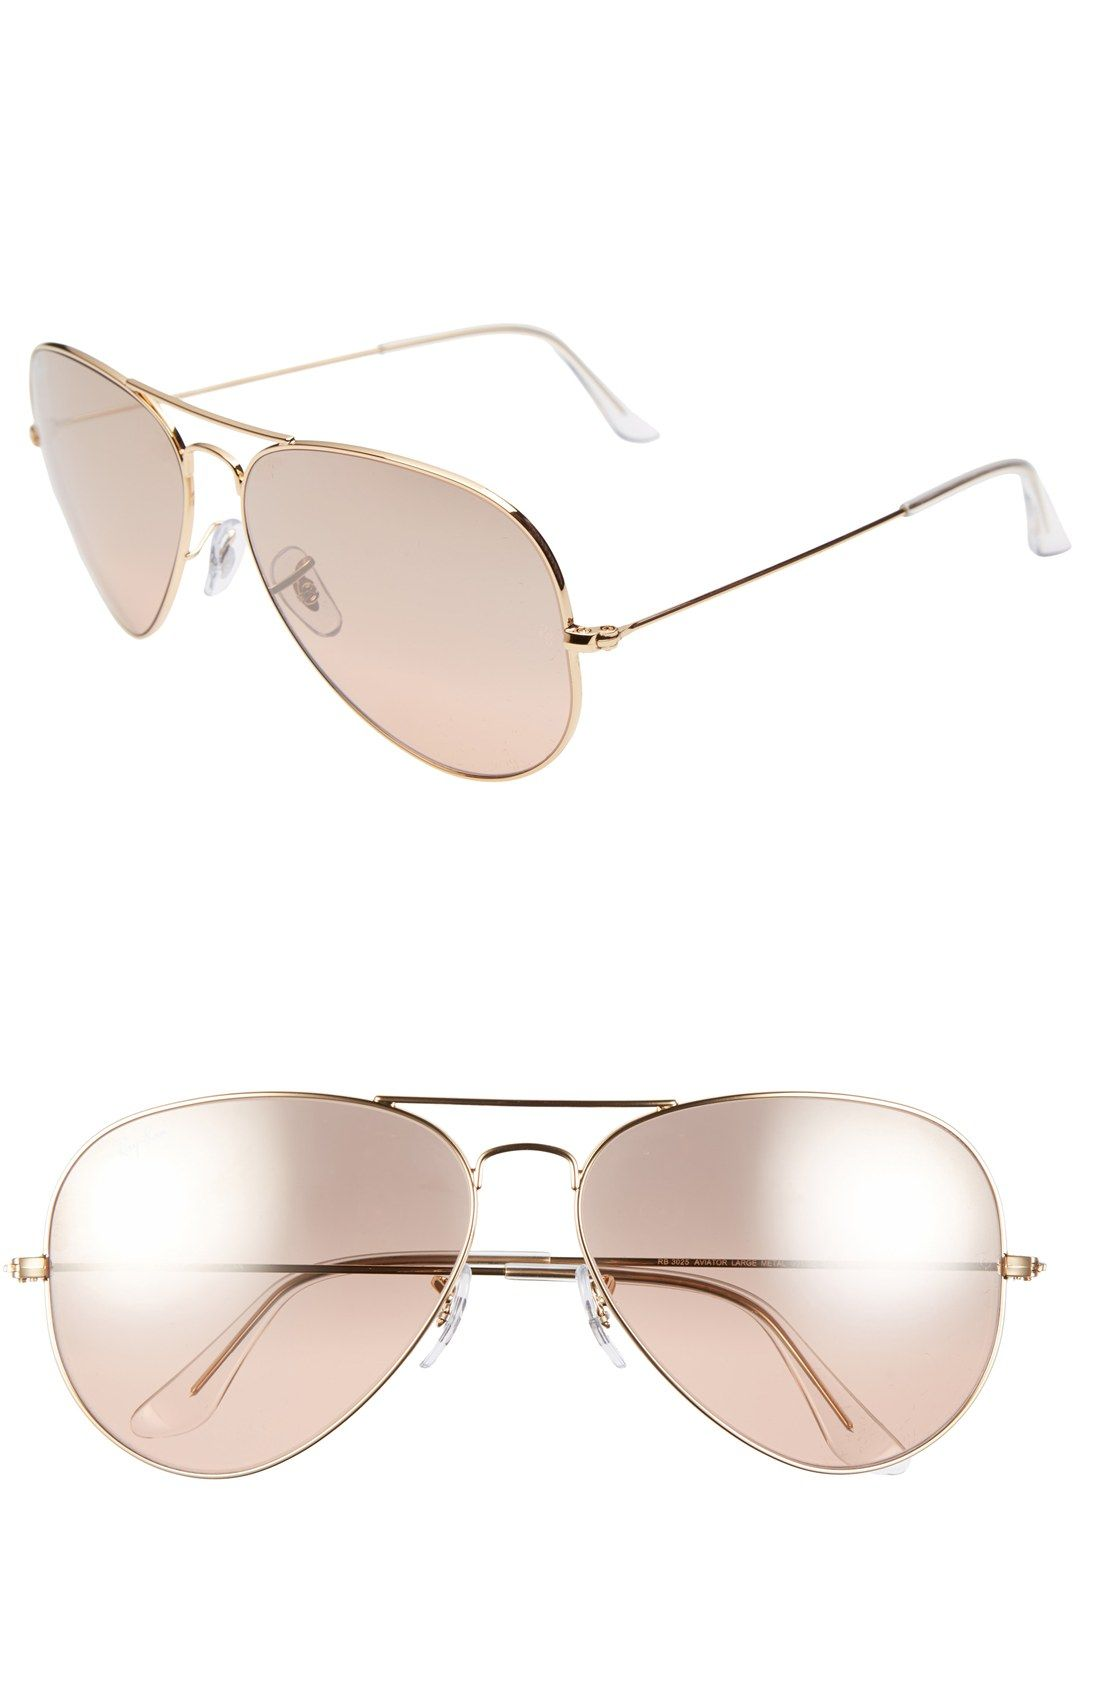 40fce2c5ec Pretty pink Ray-Ban aviators are good any time of the year.